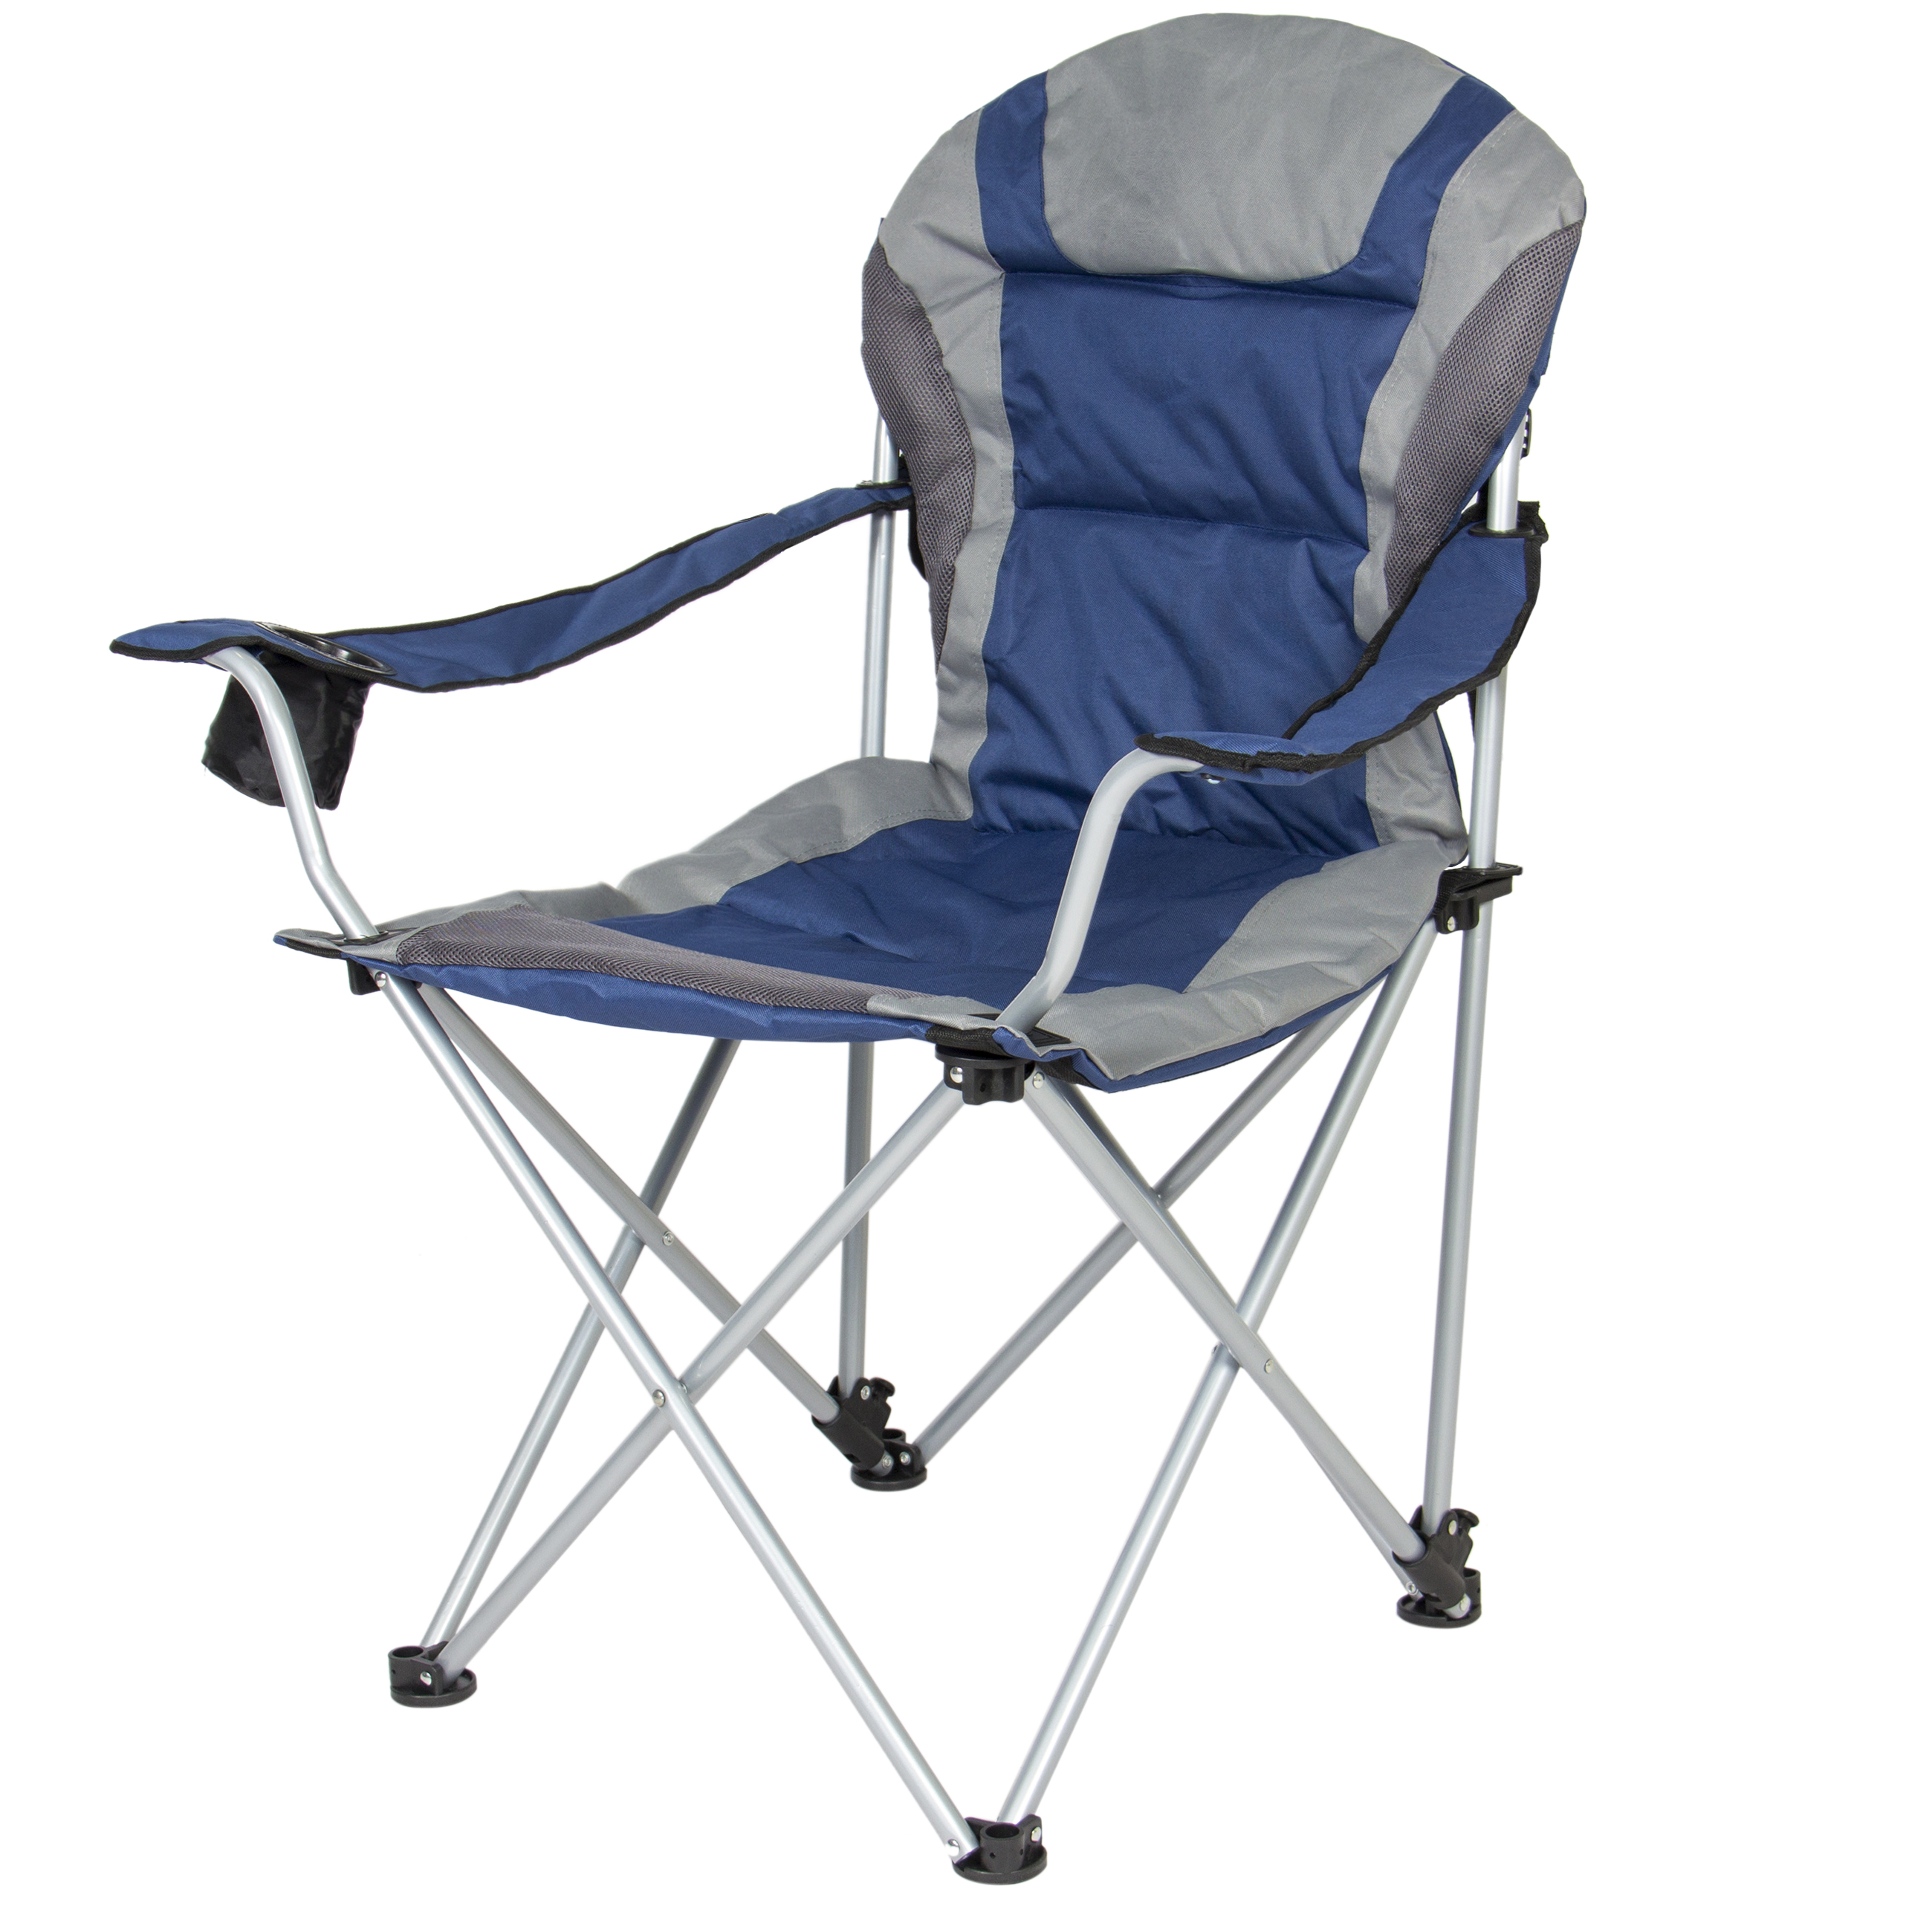 Best Choice Products Deluxe Padded Reclining Camping Fishing Beach Chair With Portable Carrying Case - Silver/Black